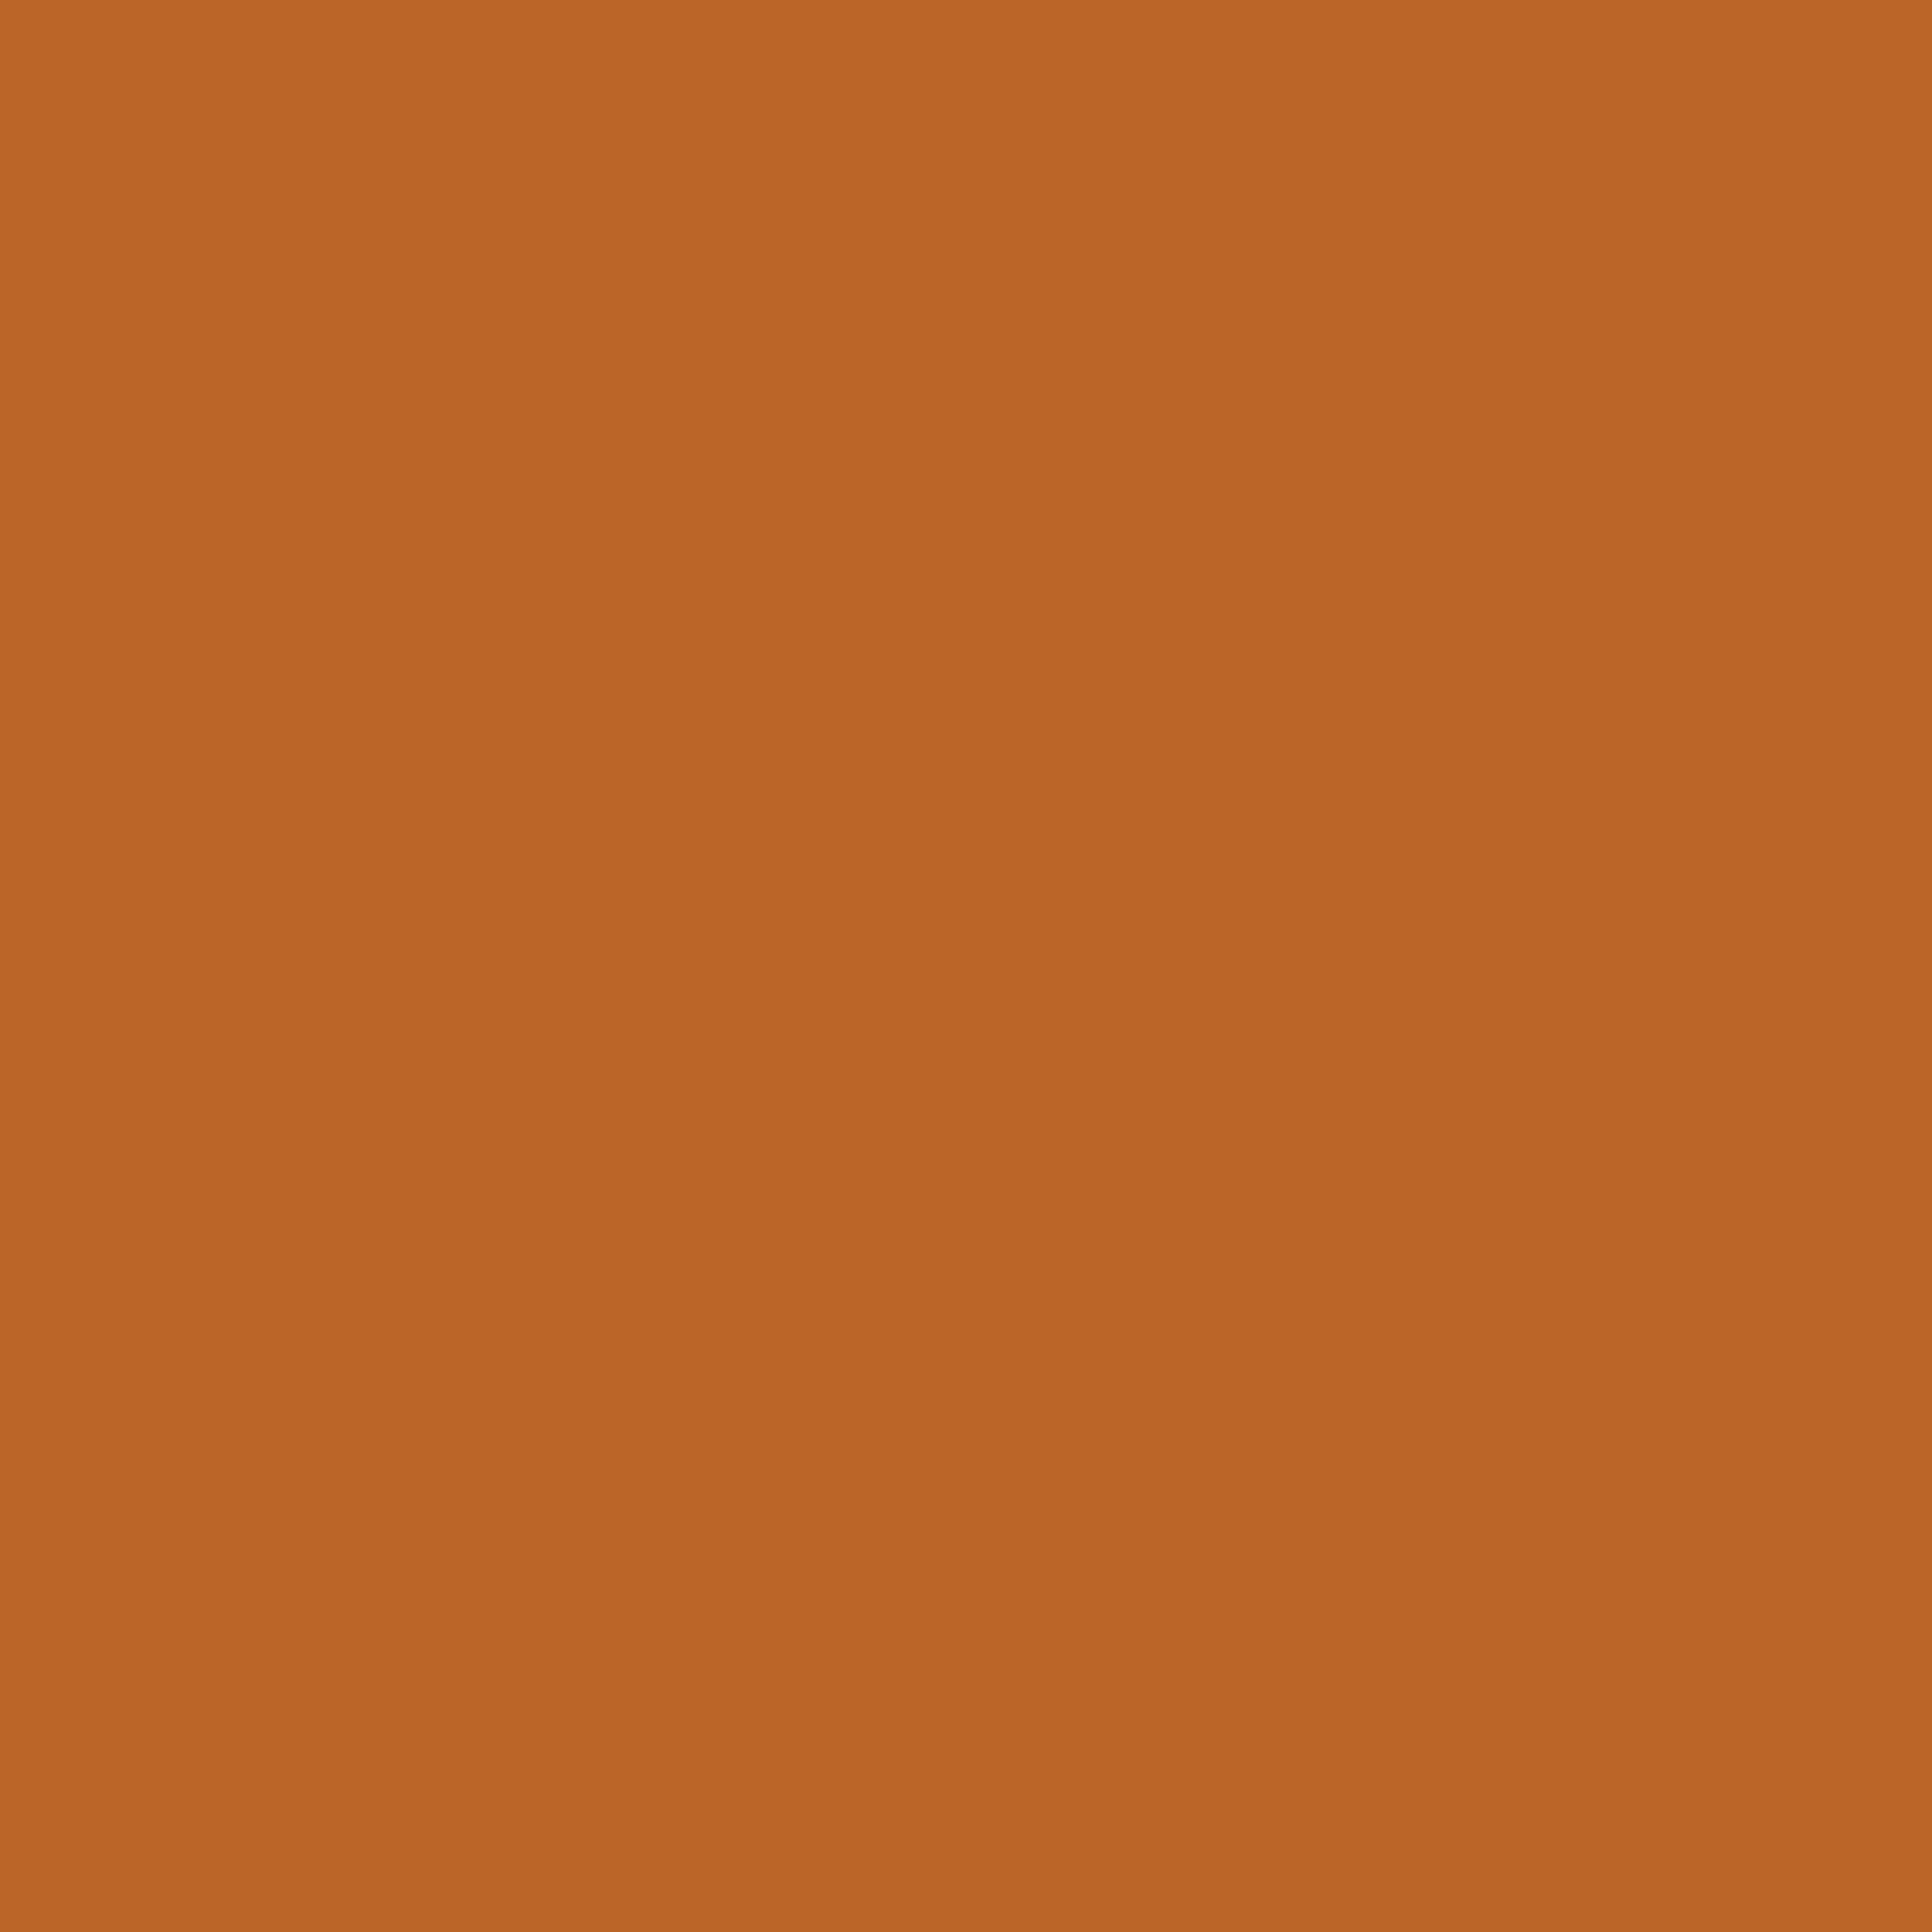 3600x3600 Ruddy Brown Solid Color Background